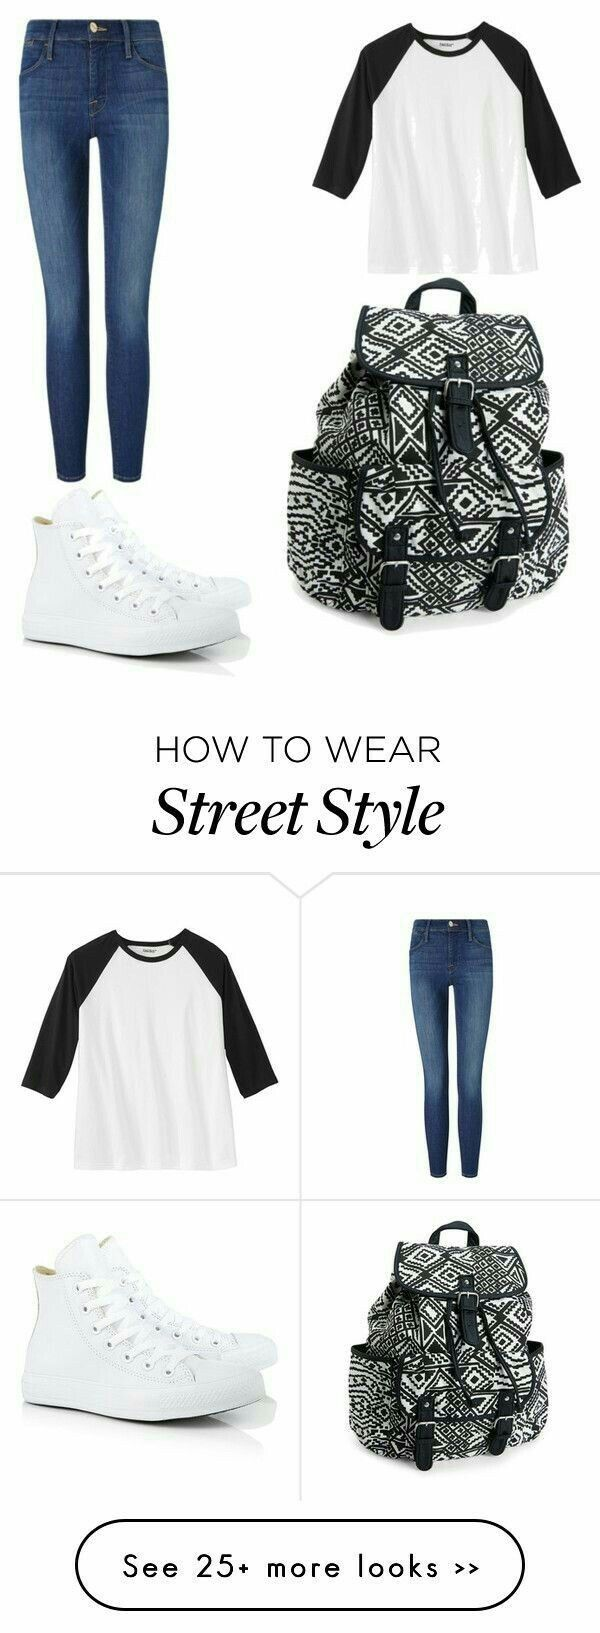 Jeans outfit fallwinter outfits in pinterest outfits